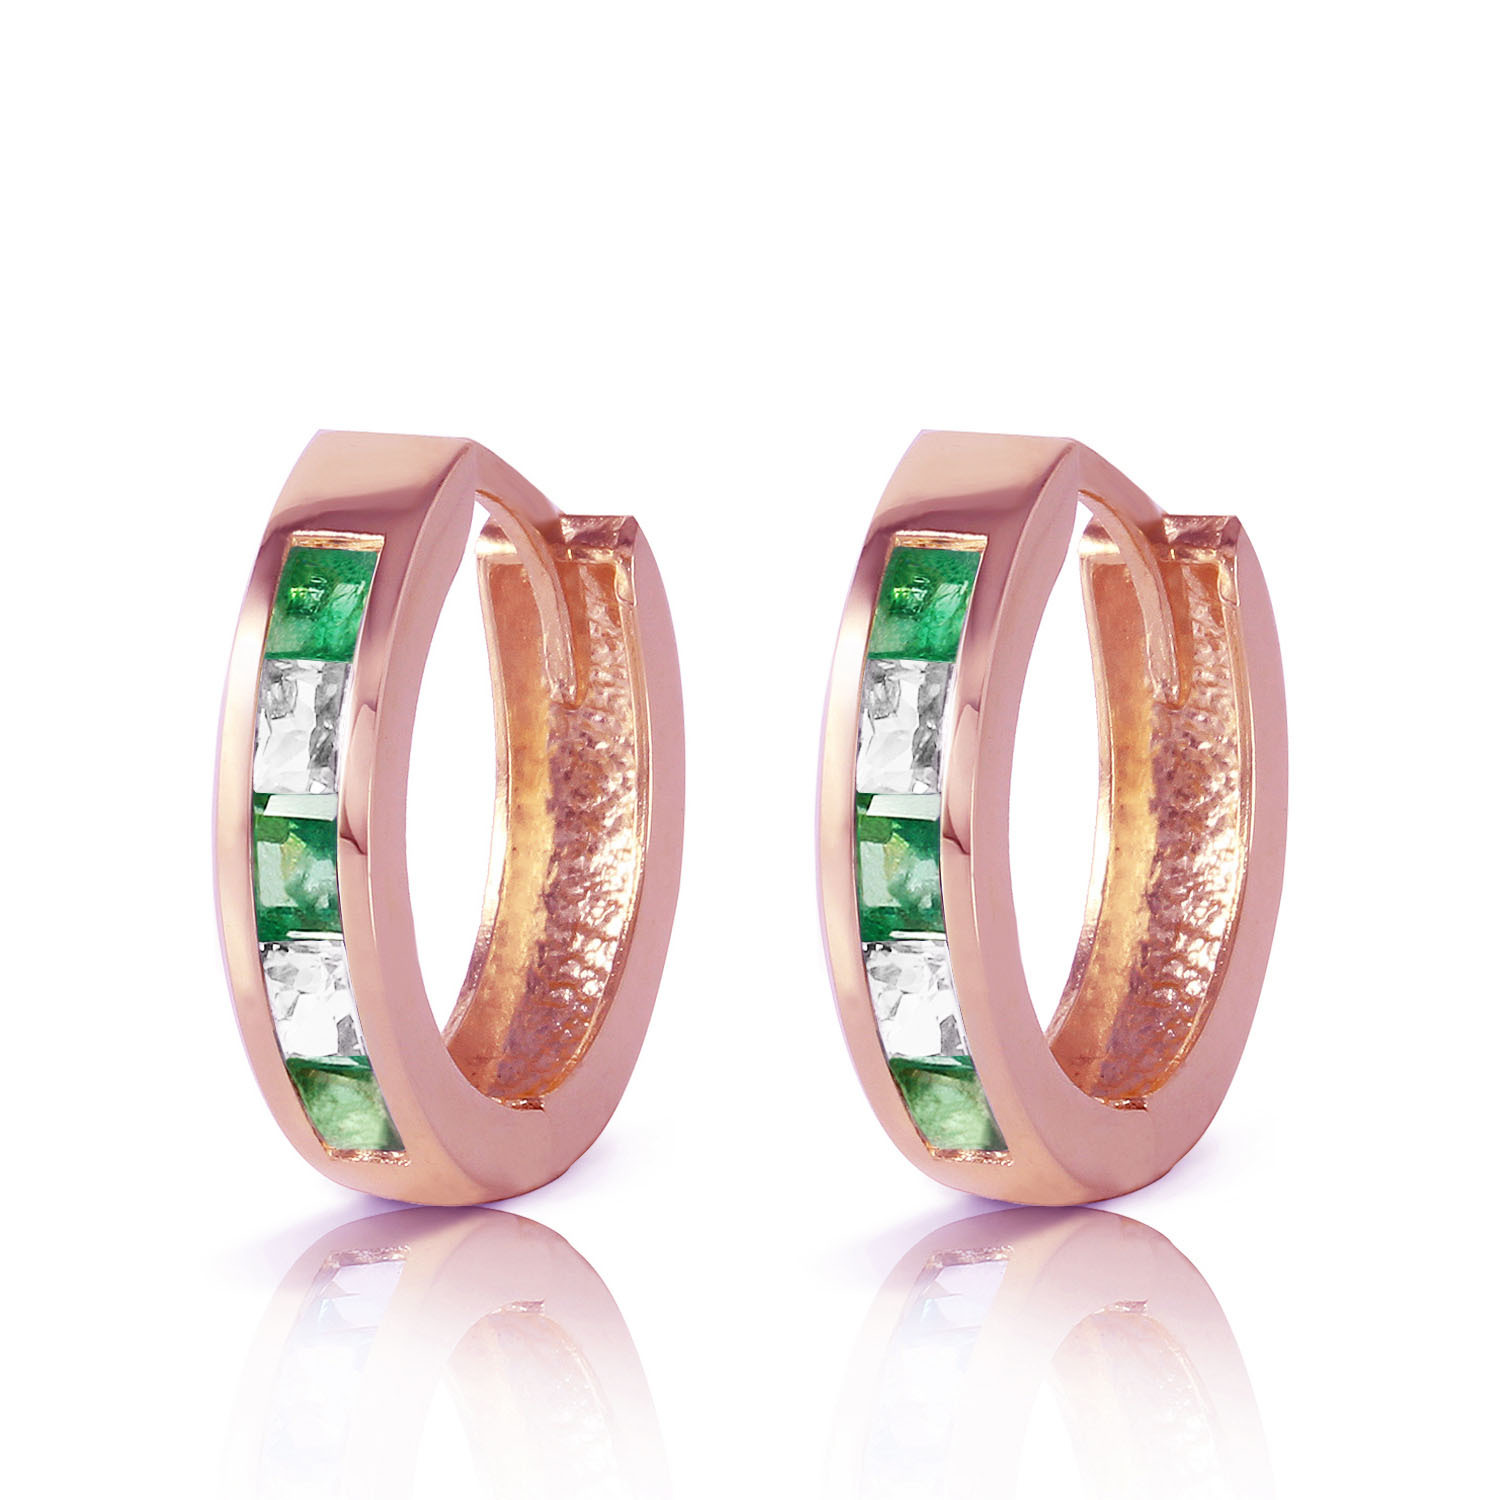 Primary image for 1.26 Carat 14K Solid Rose Gold Hoop Earrings Natural Emerald Rose Topaz